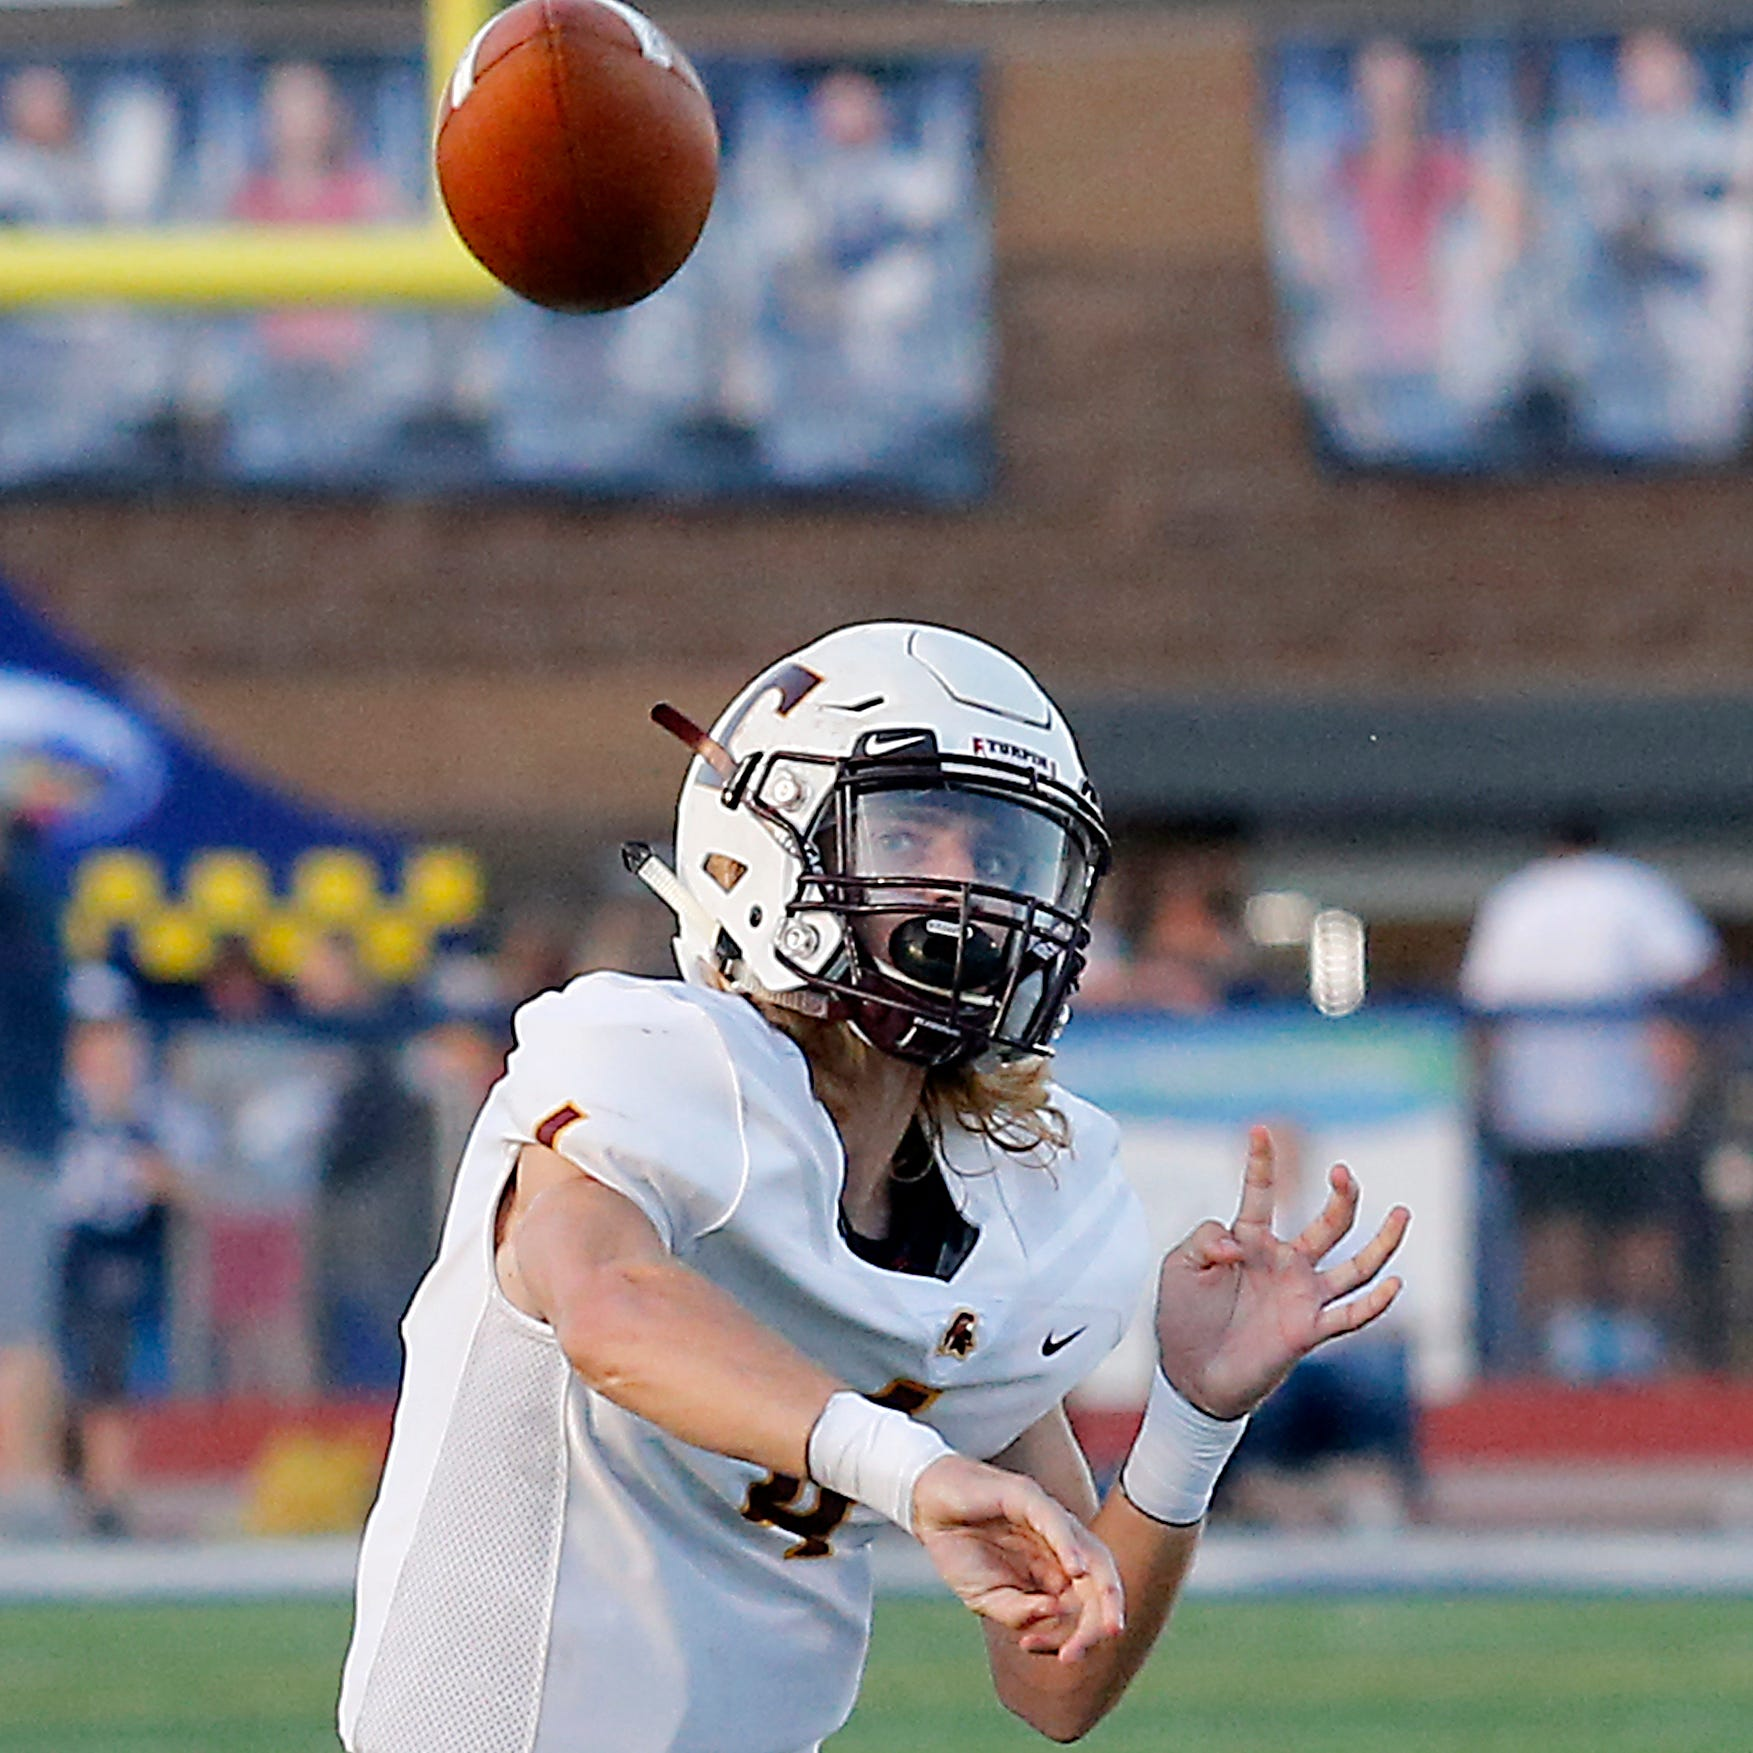 High school football: Turpin beats West Clermont, 19-16